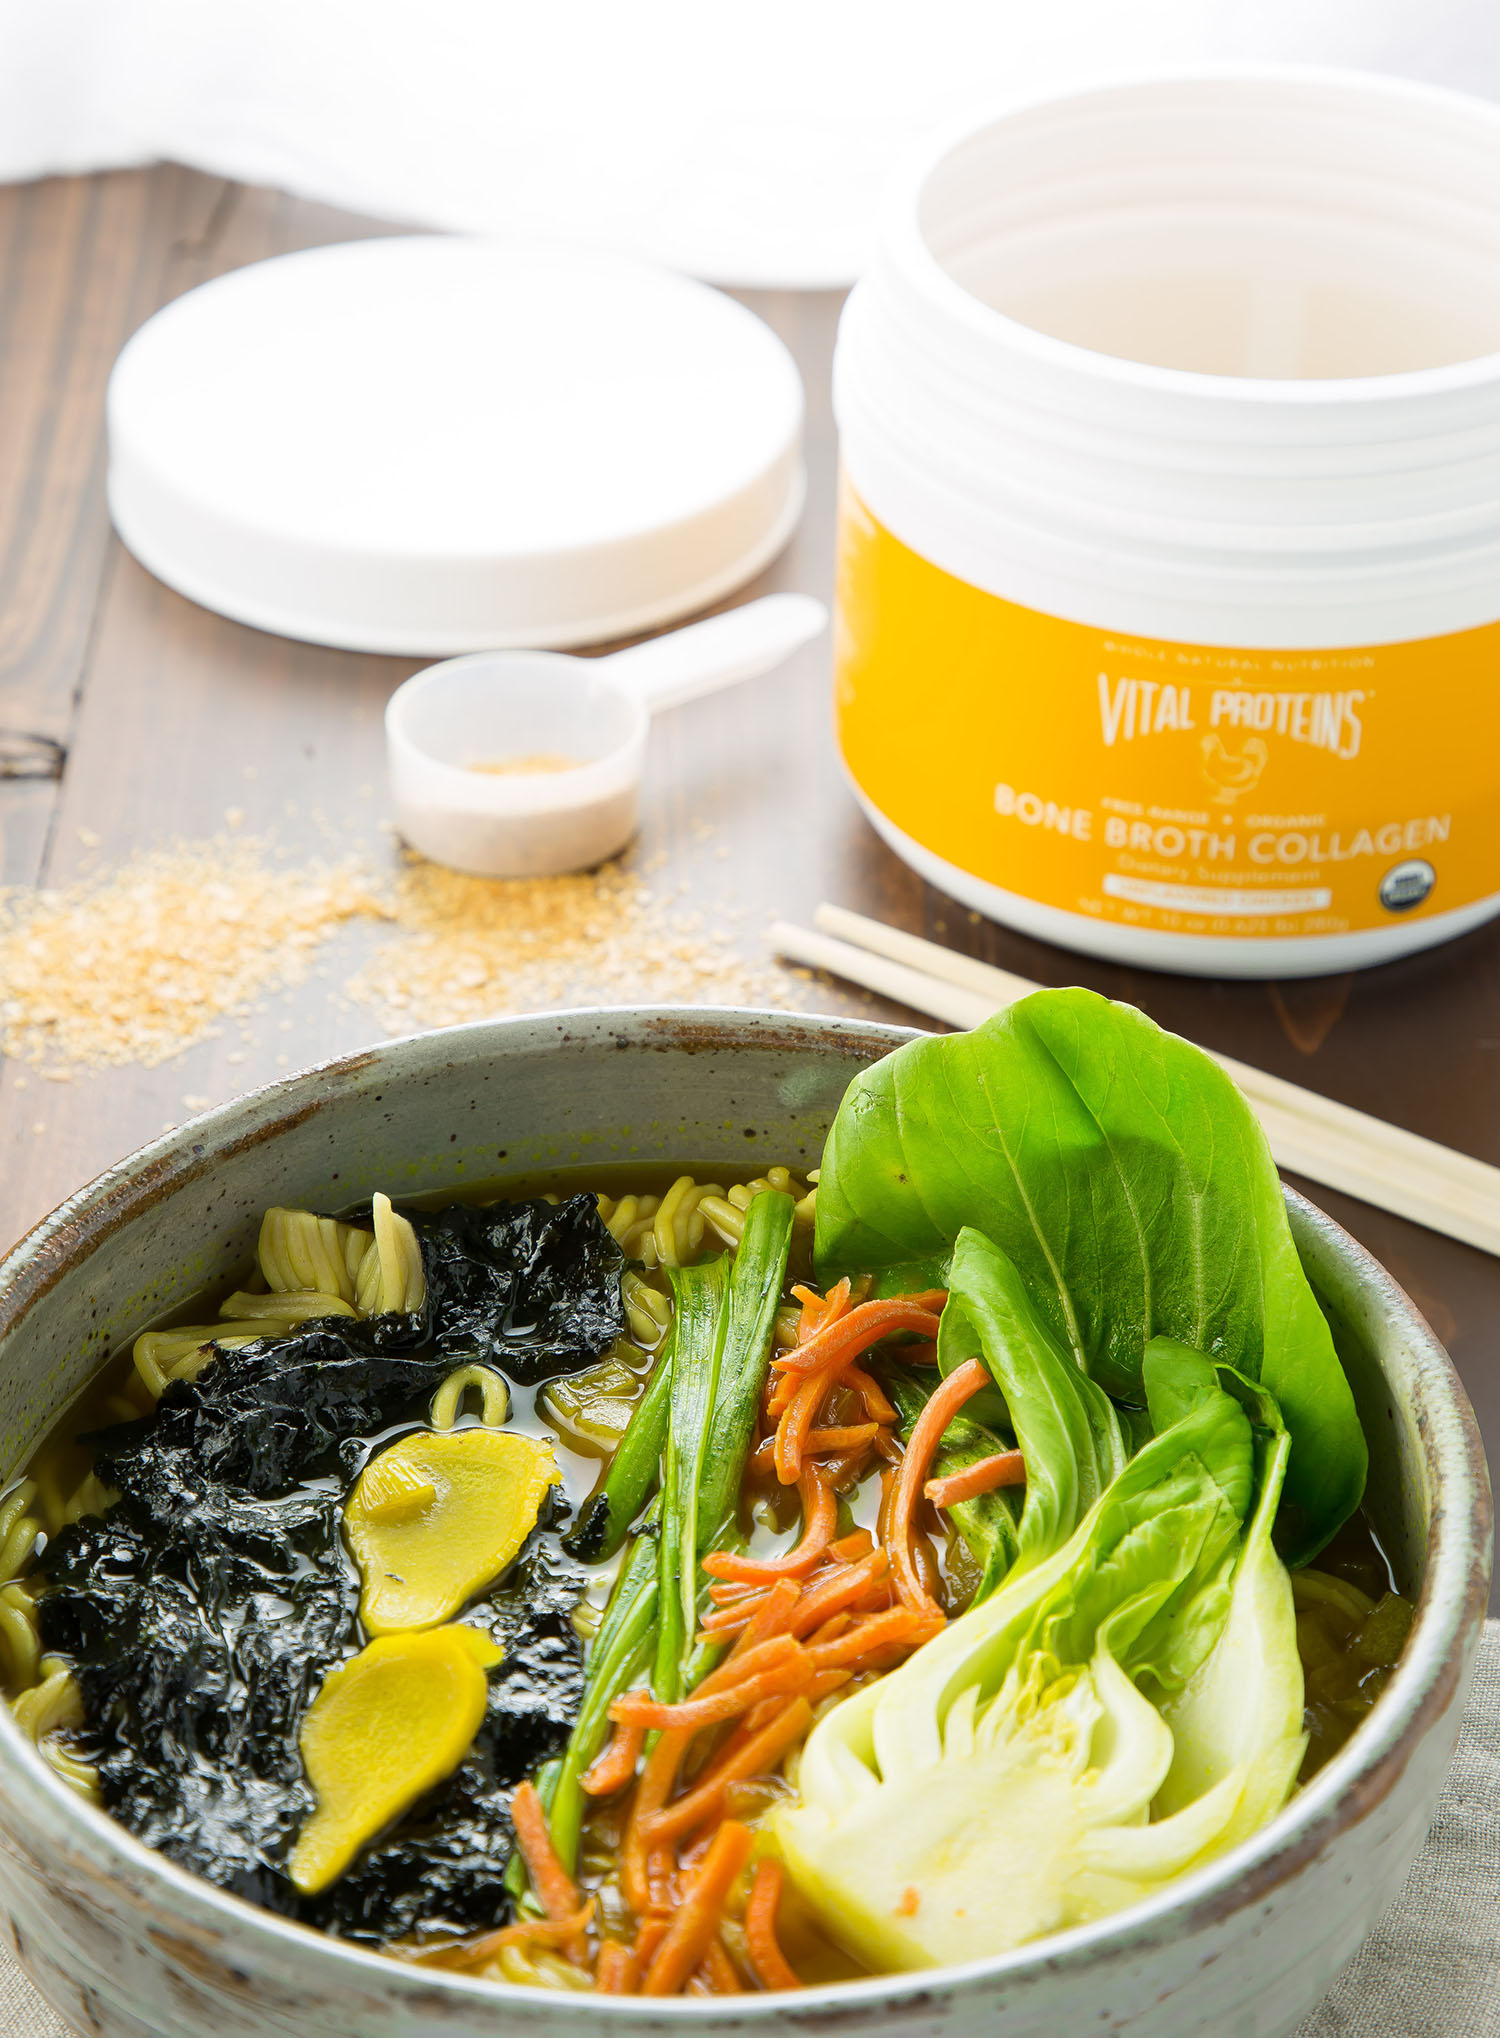 ramen bowl with bone broth collagen